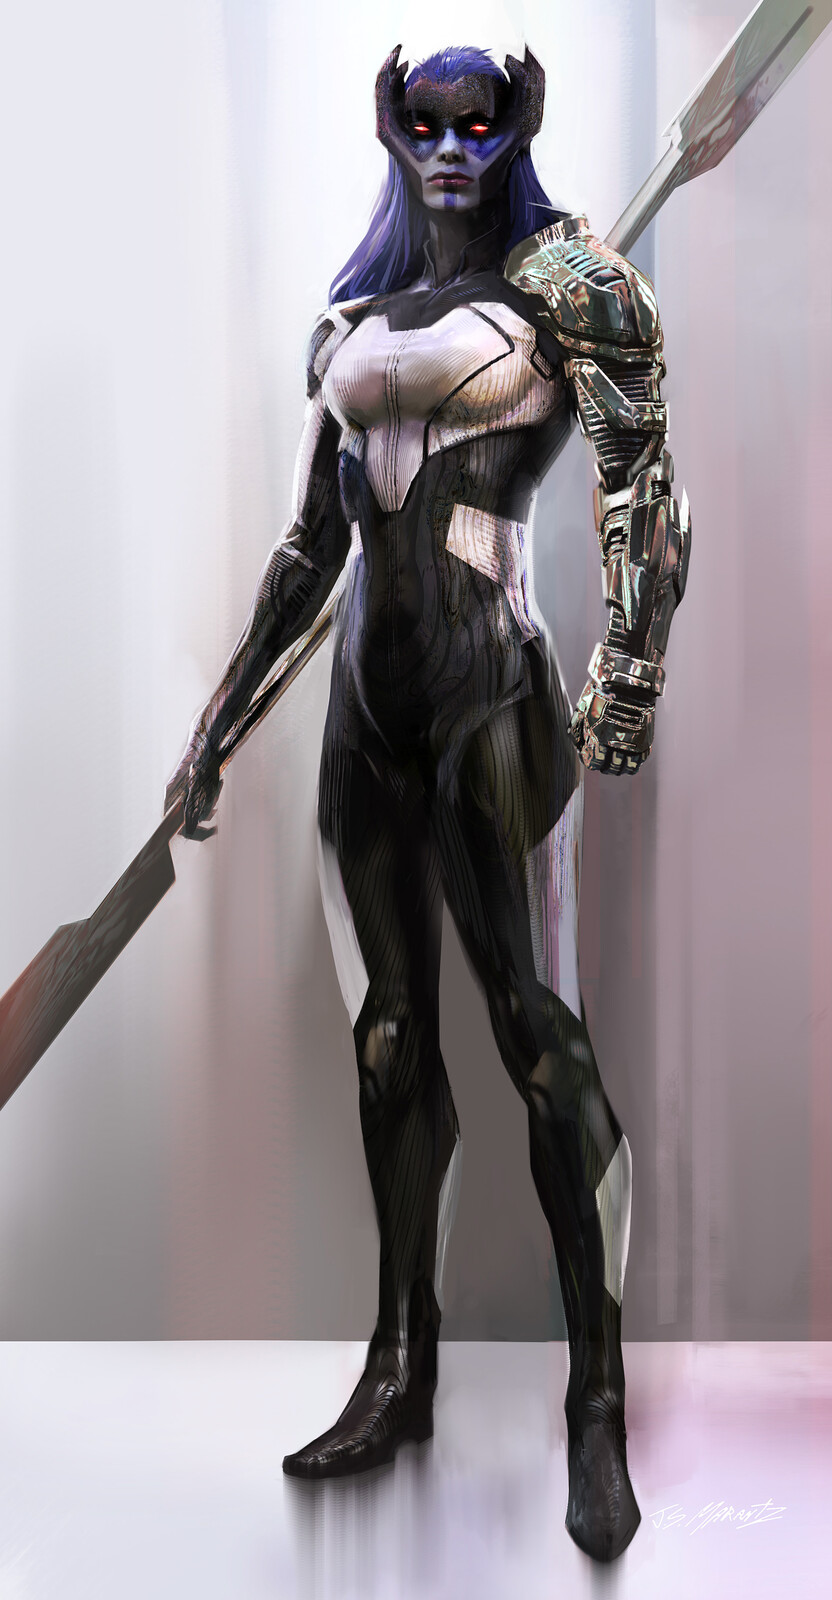 AVENGERS Infinity War: Proxima Midnight Design